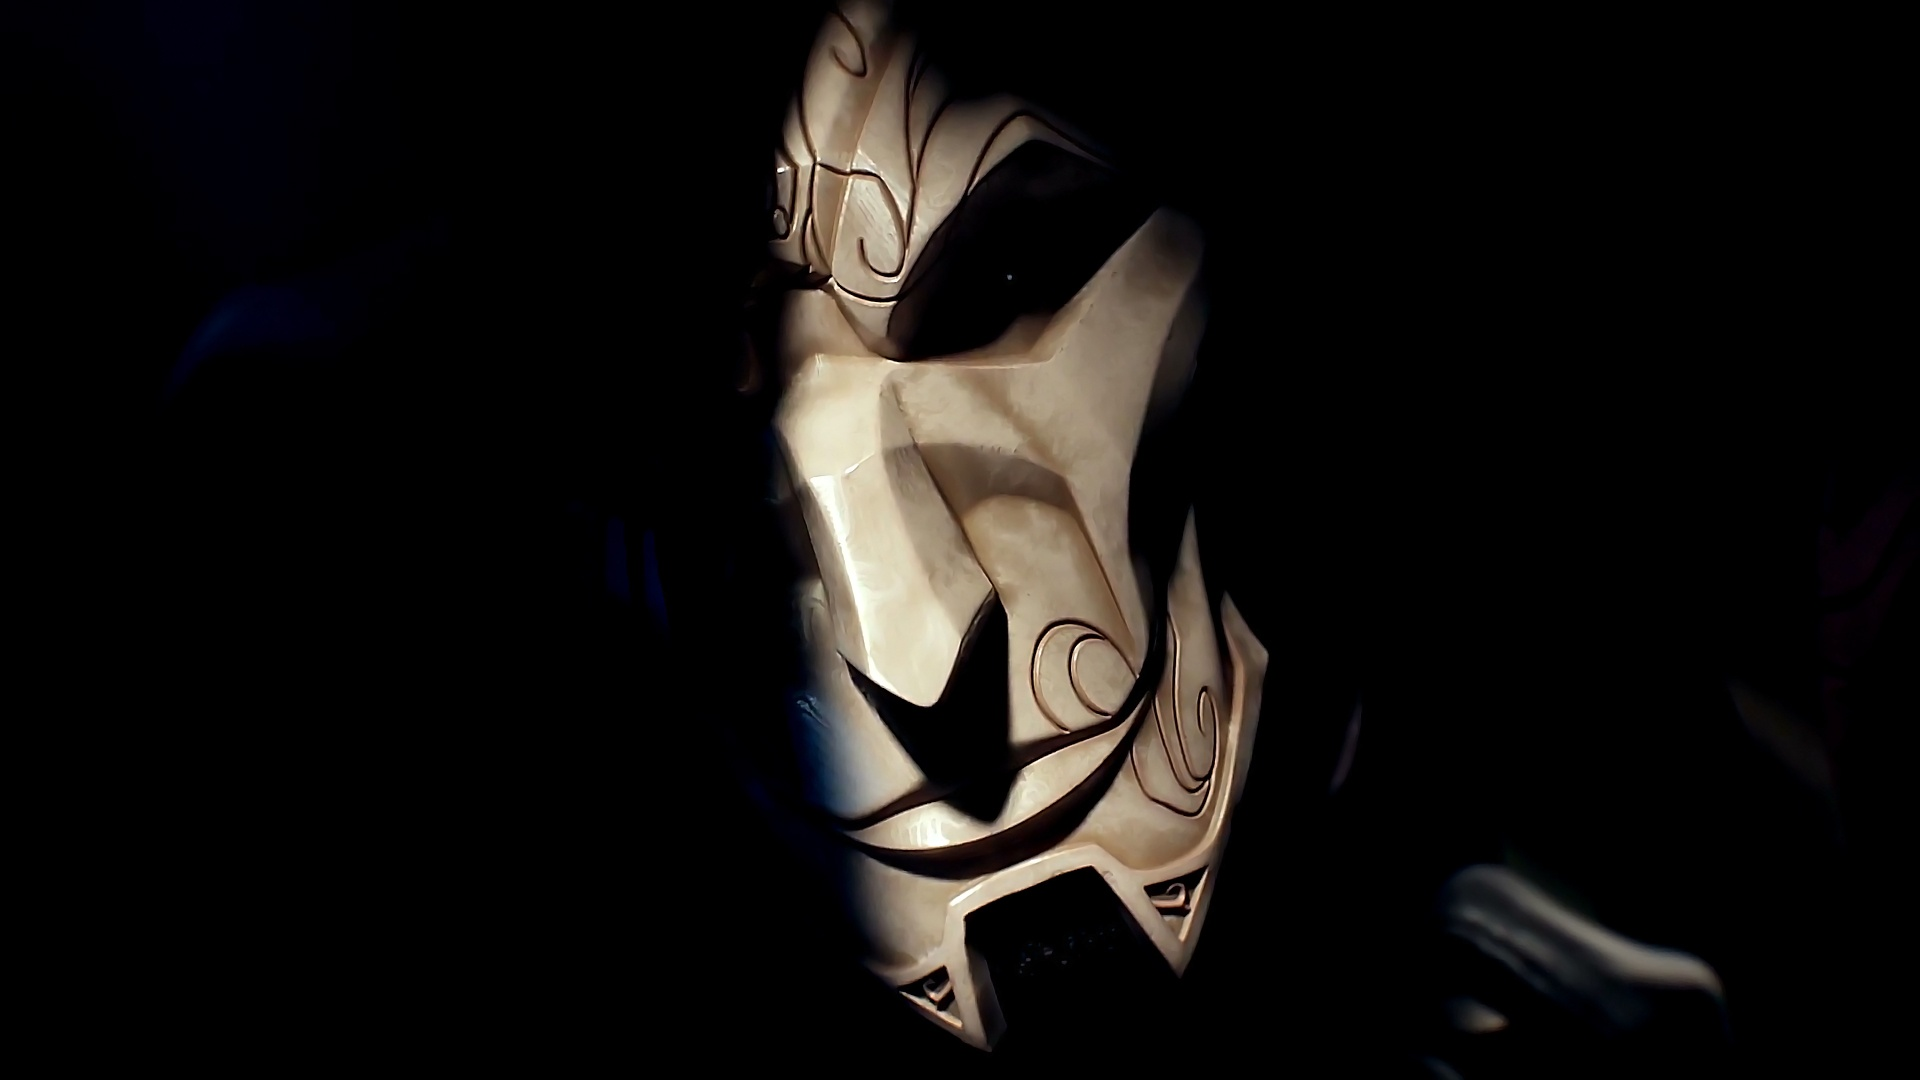 Jhin's Mask wallpaper